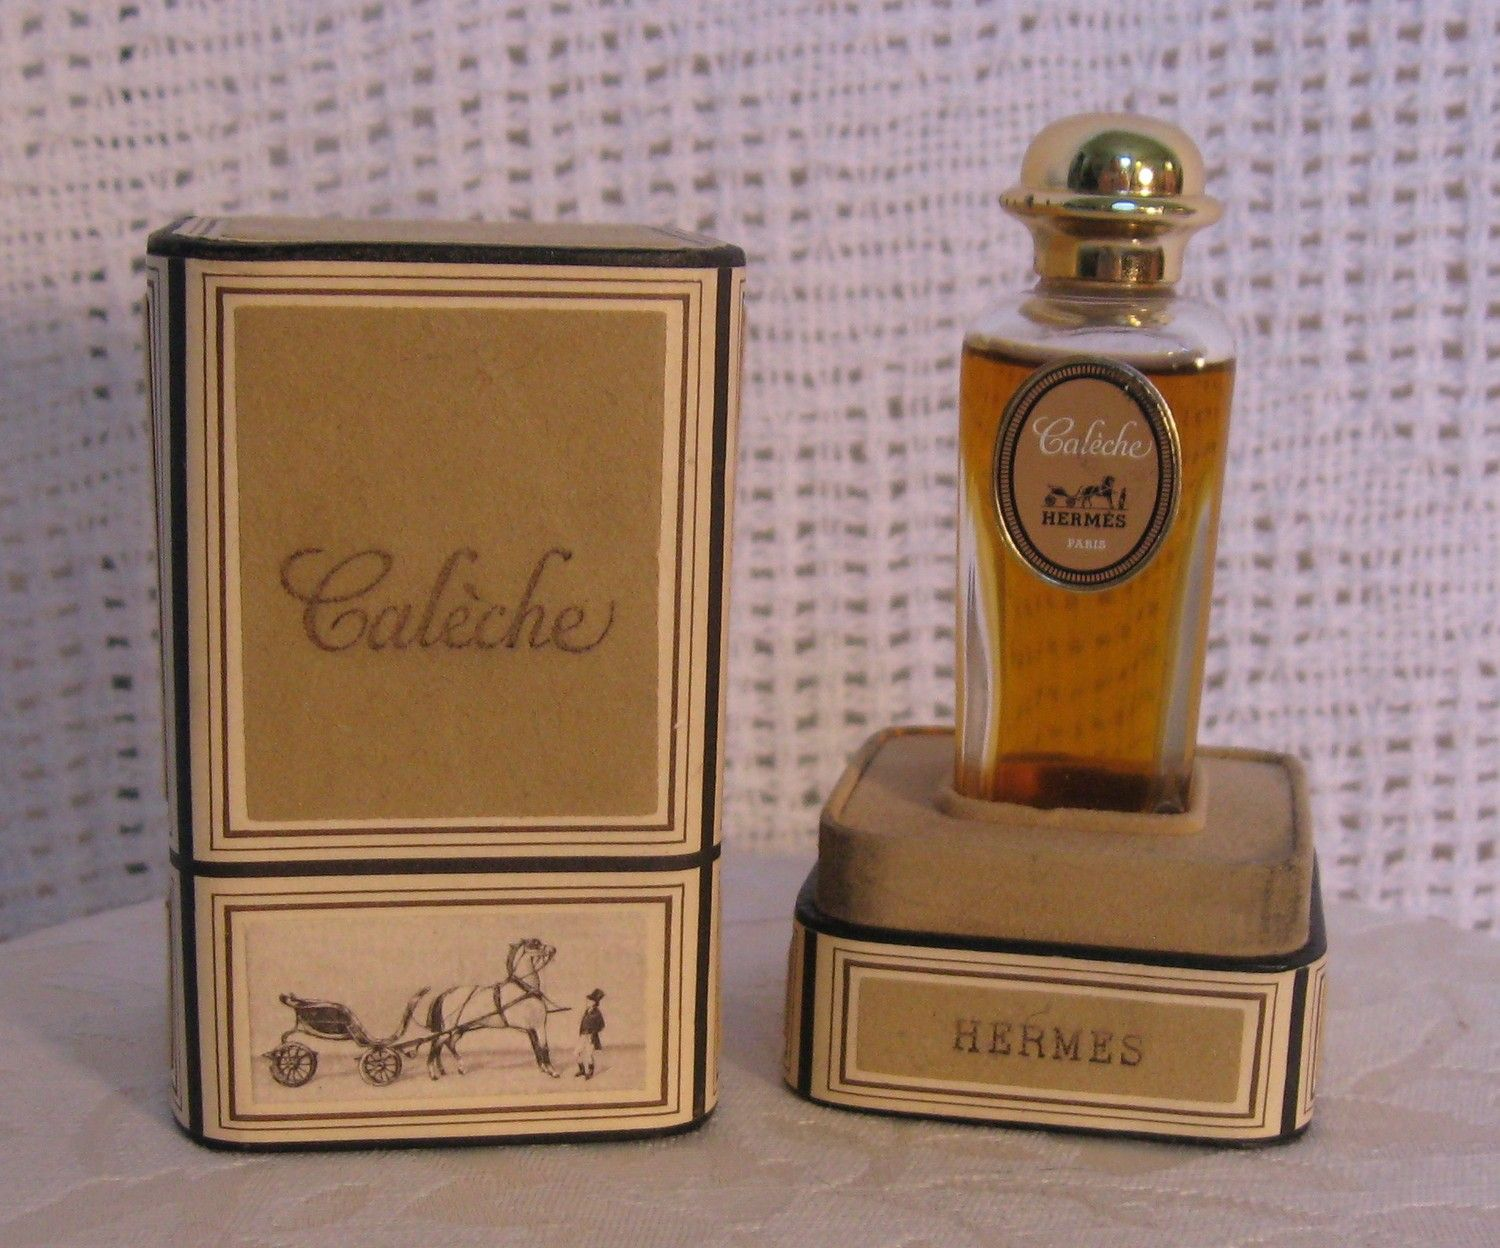 vintage 1960s hermes caleche parfum perfume 1 2 ounce bottle made in france perfume perfume. Black Bedroom Furniture Sets. Home Design Ideas